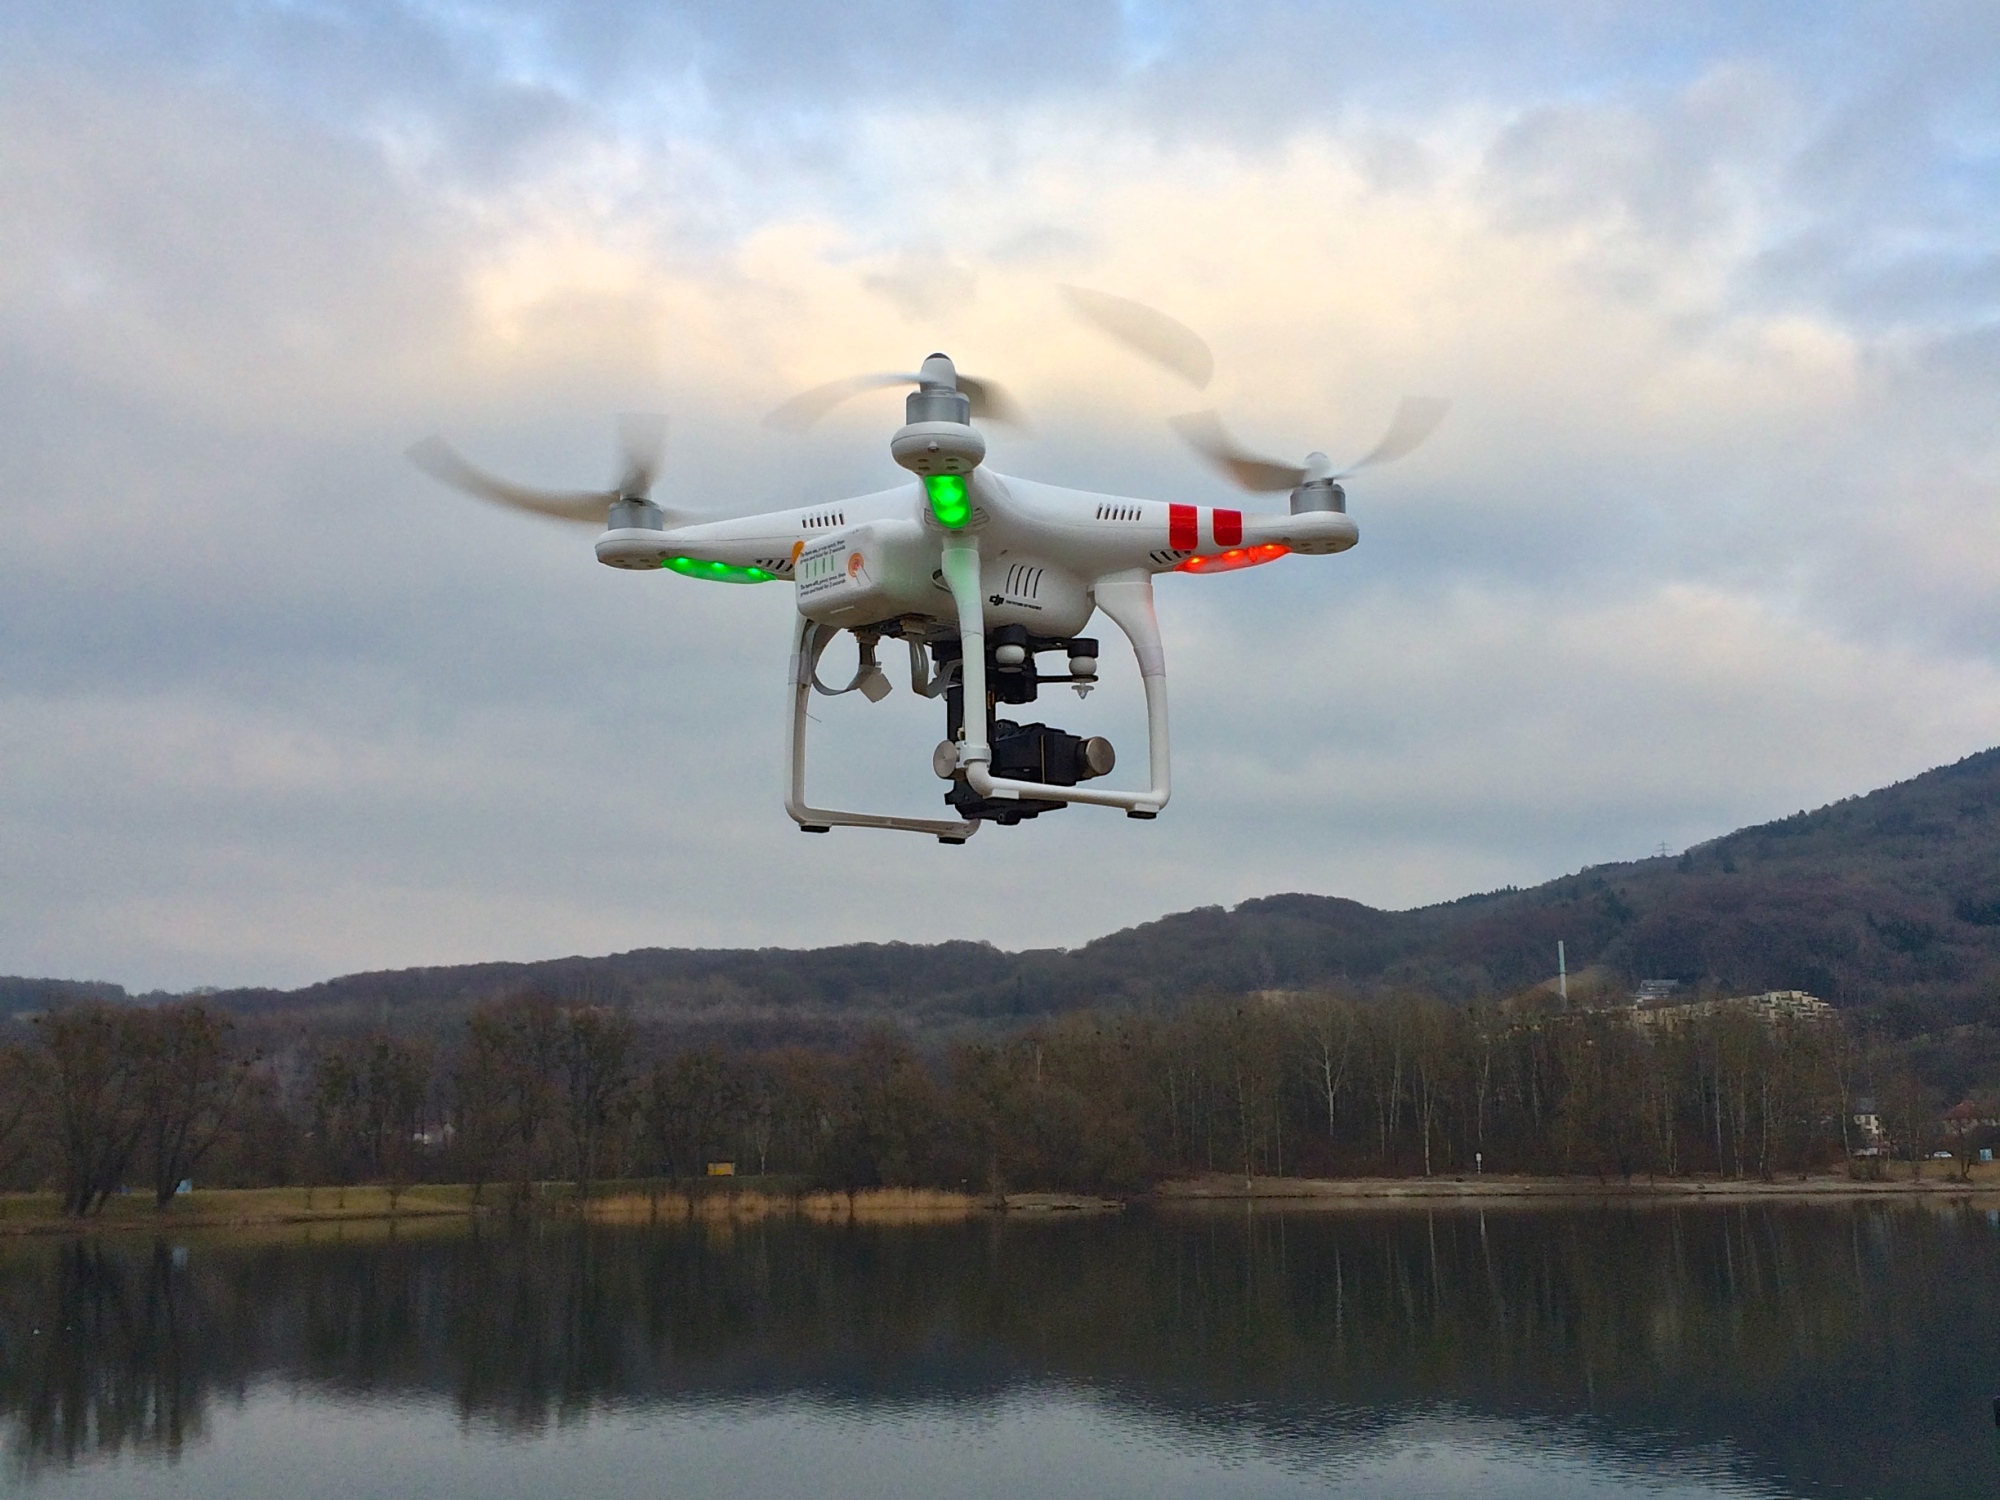 DJI Phantom 2 GoPro